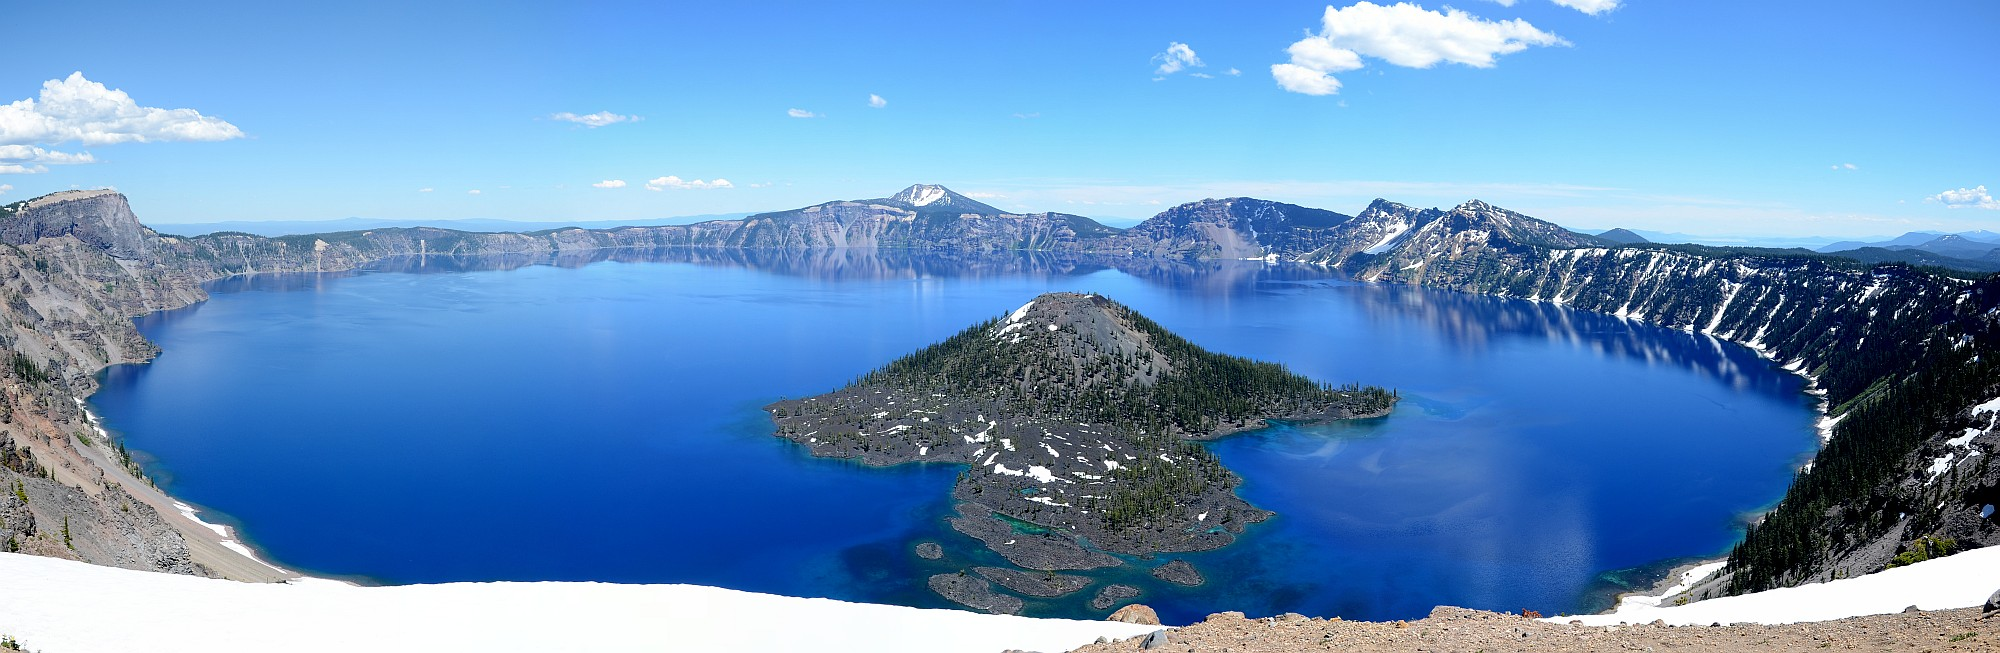 Crater Lake NP Panorama